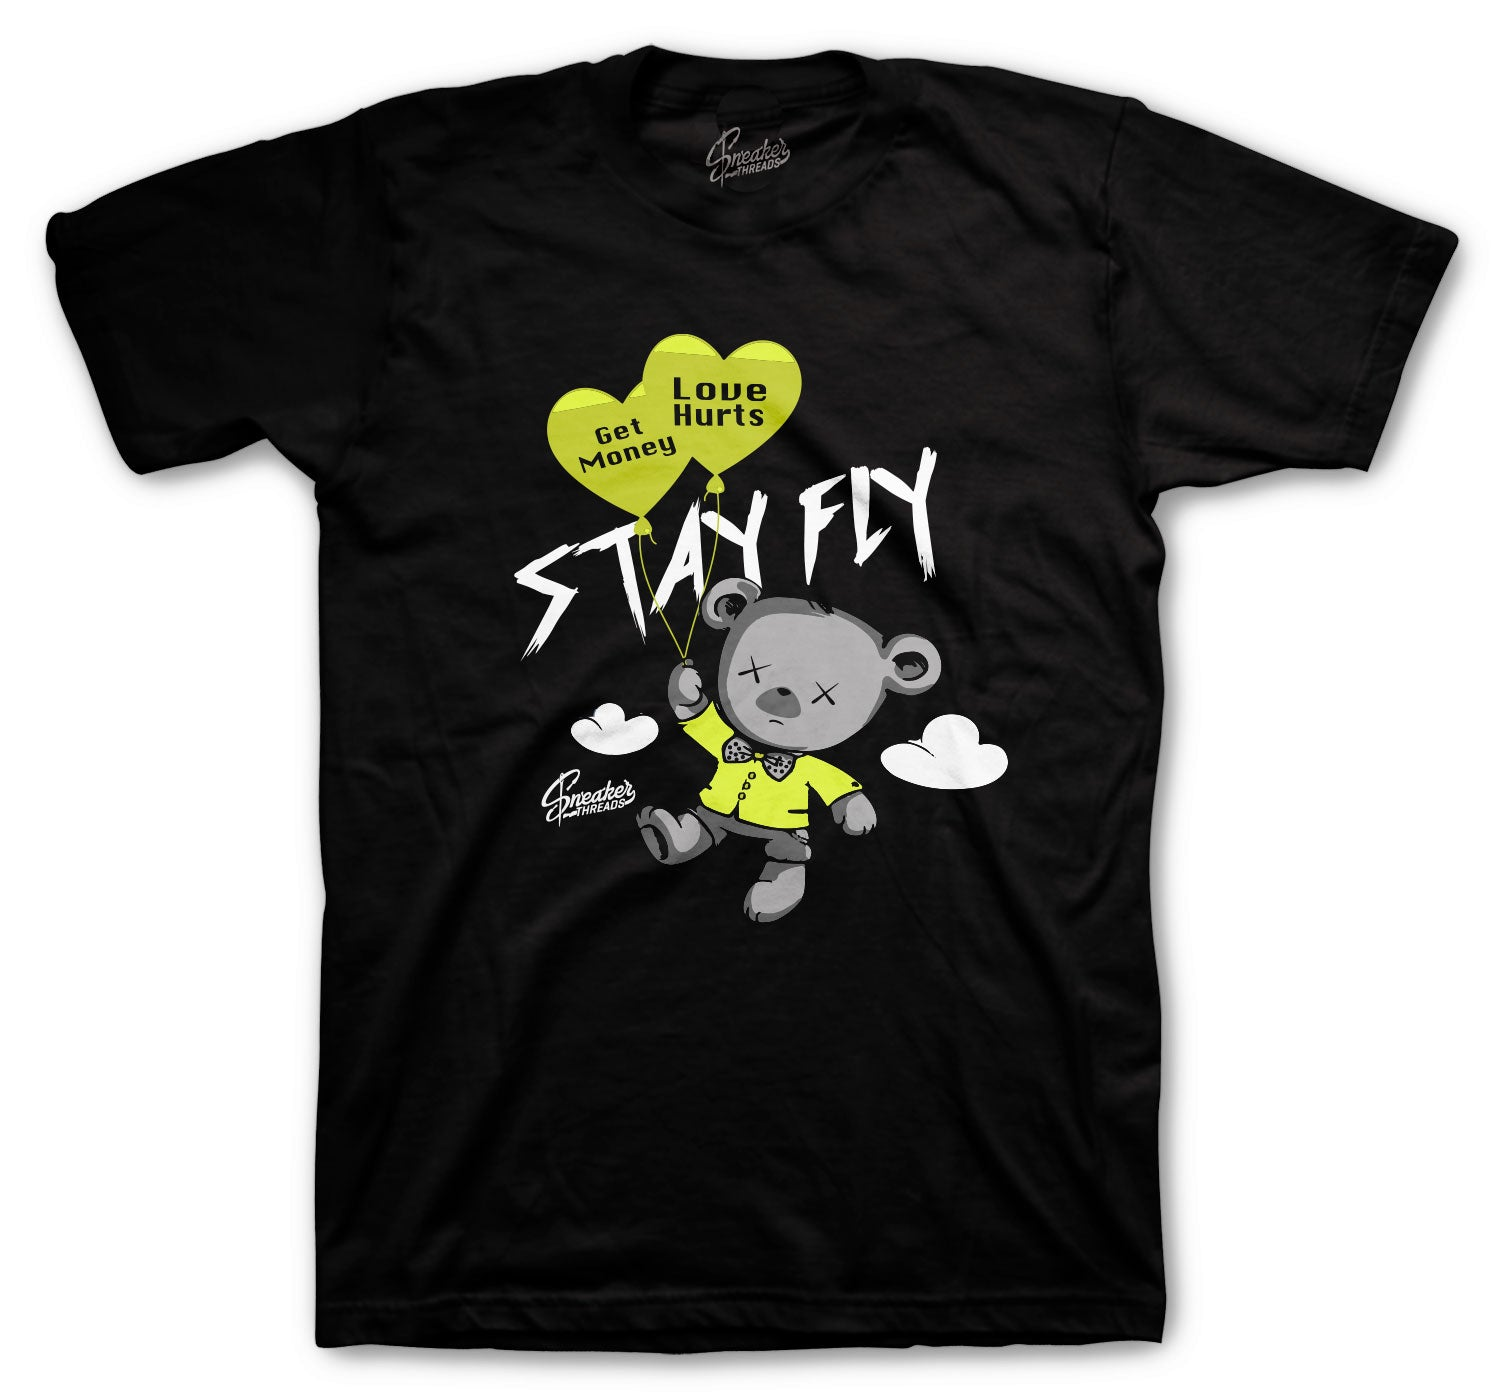 Foamposite Pro Volt Shirt - Money Over Love - Black